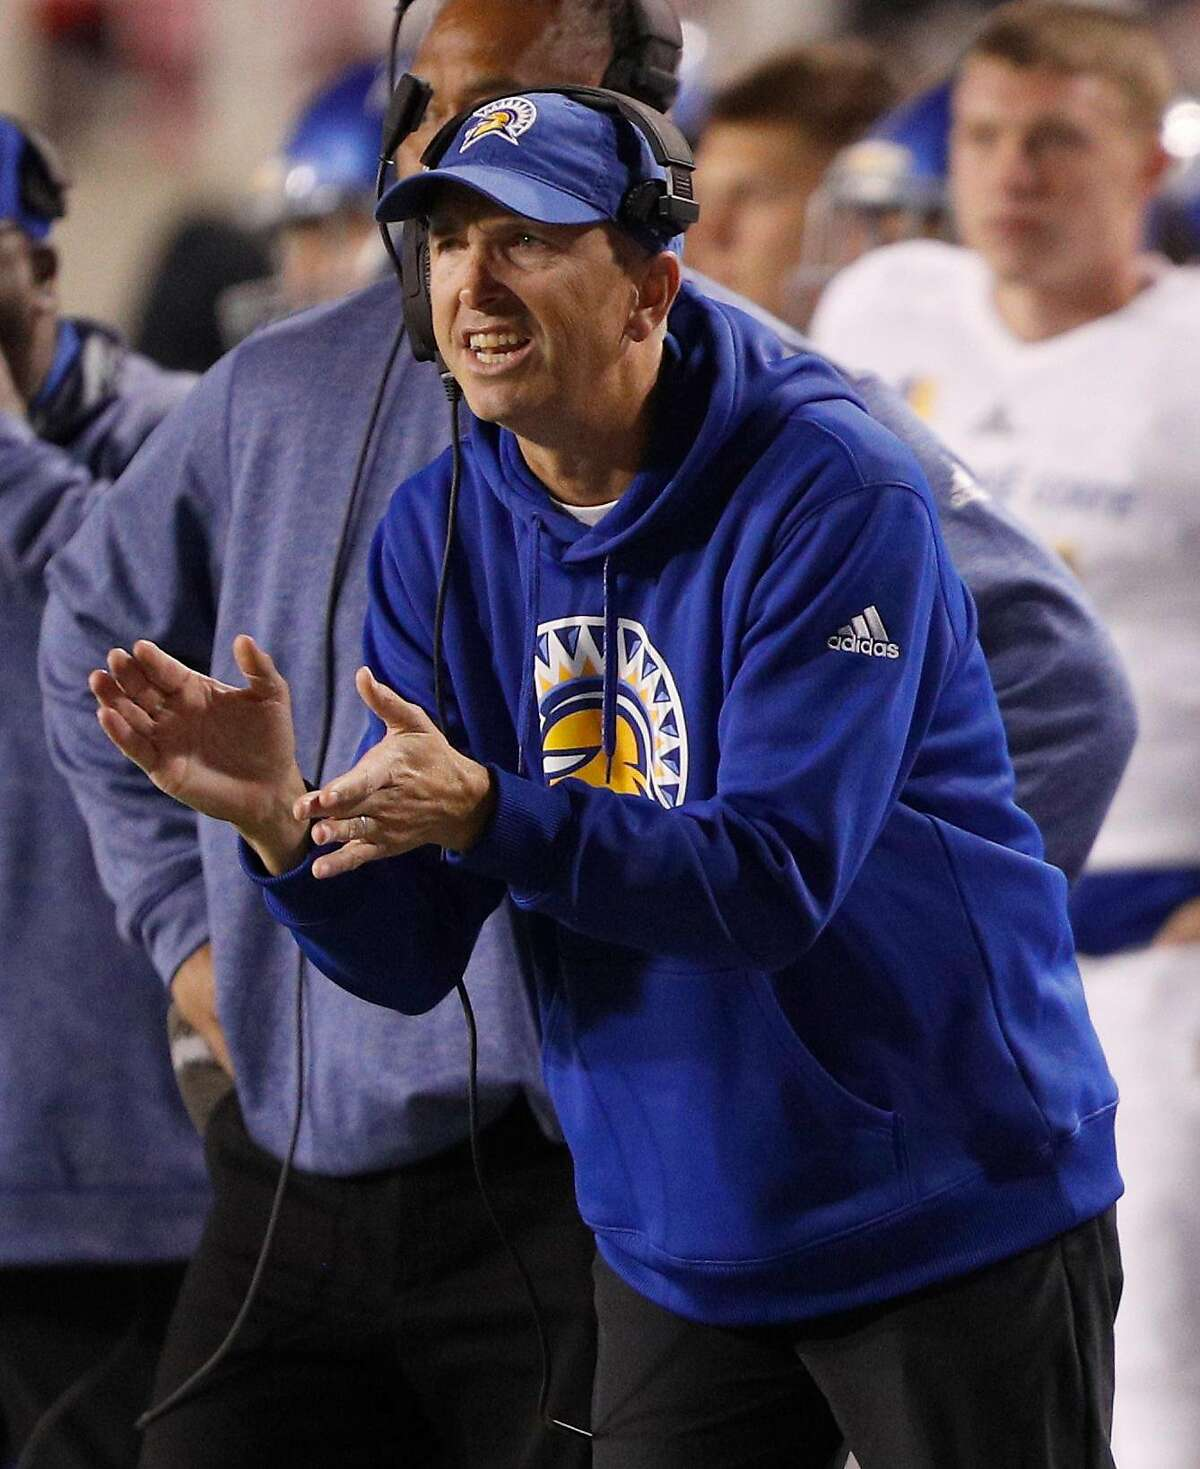 SALT LAKE CITY, UT - SEPTEMBER 16: Head coach Brent Brennan of the San Jose State Spartans urges his players on during the second half of an college football game against theUtah Utes on September 16, 2017 at Rice Eccles Stadium in Salt Lake City, Utah. Utah defeated San Jose 54-16. (Photo by George Frey/Getty Images)